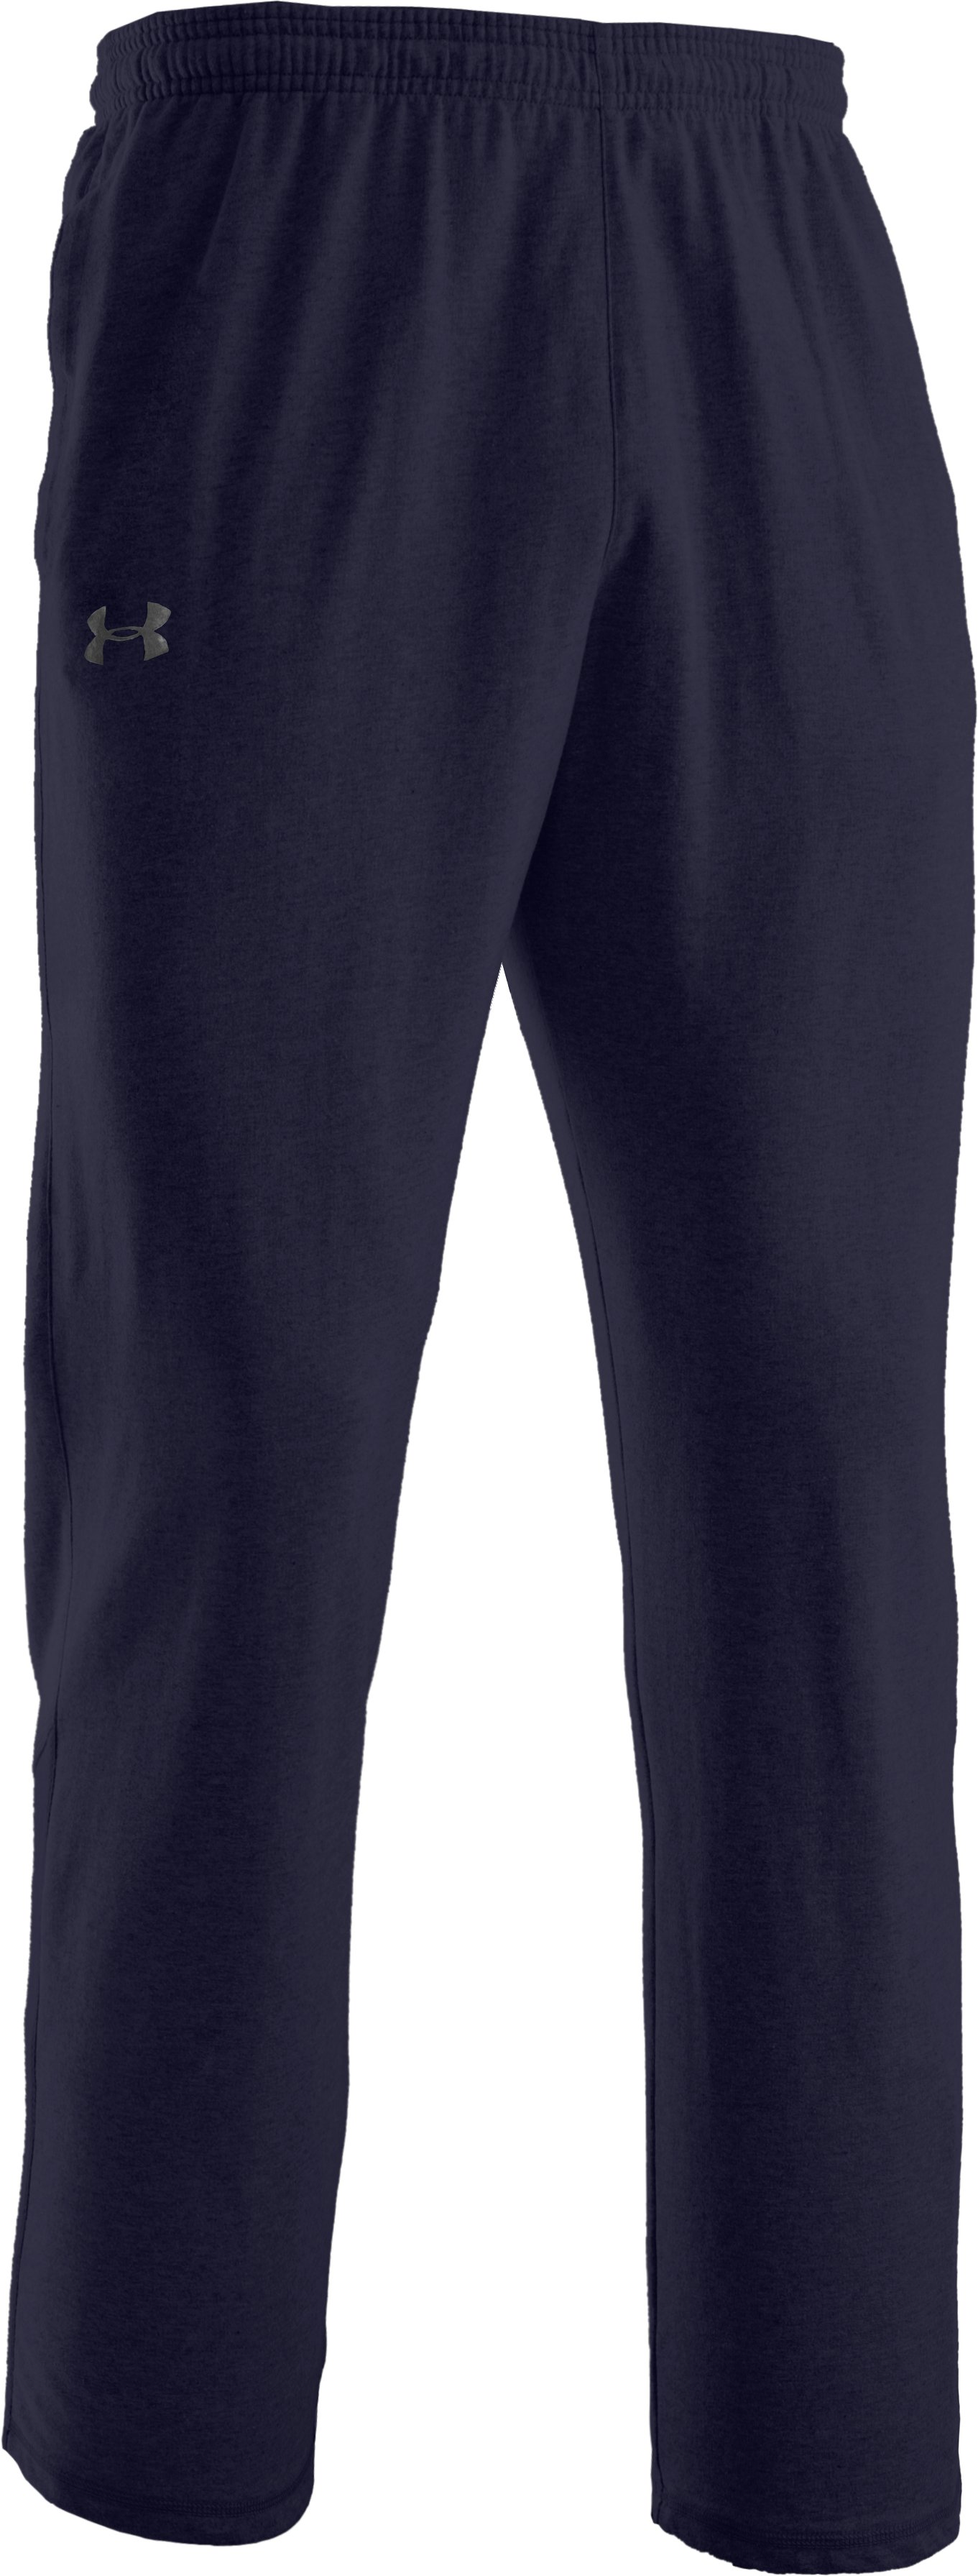 Men's Team Charged Cotton® Storm Pants, Midnight Navy